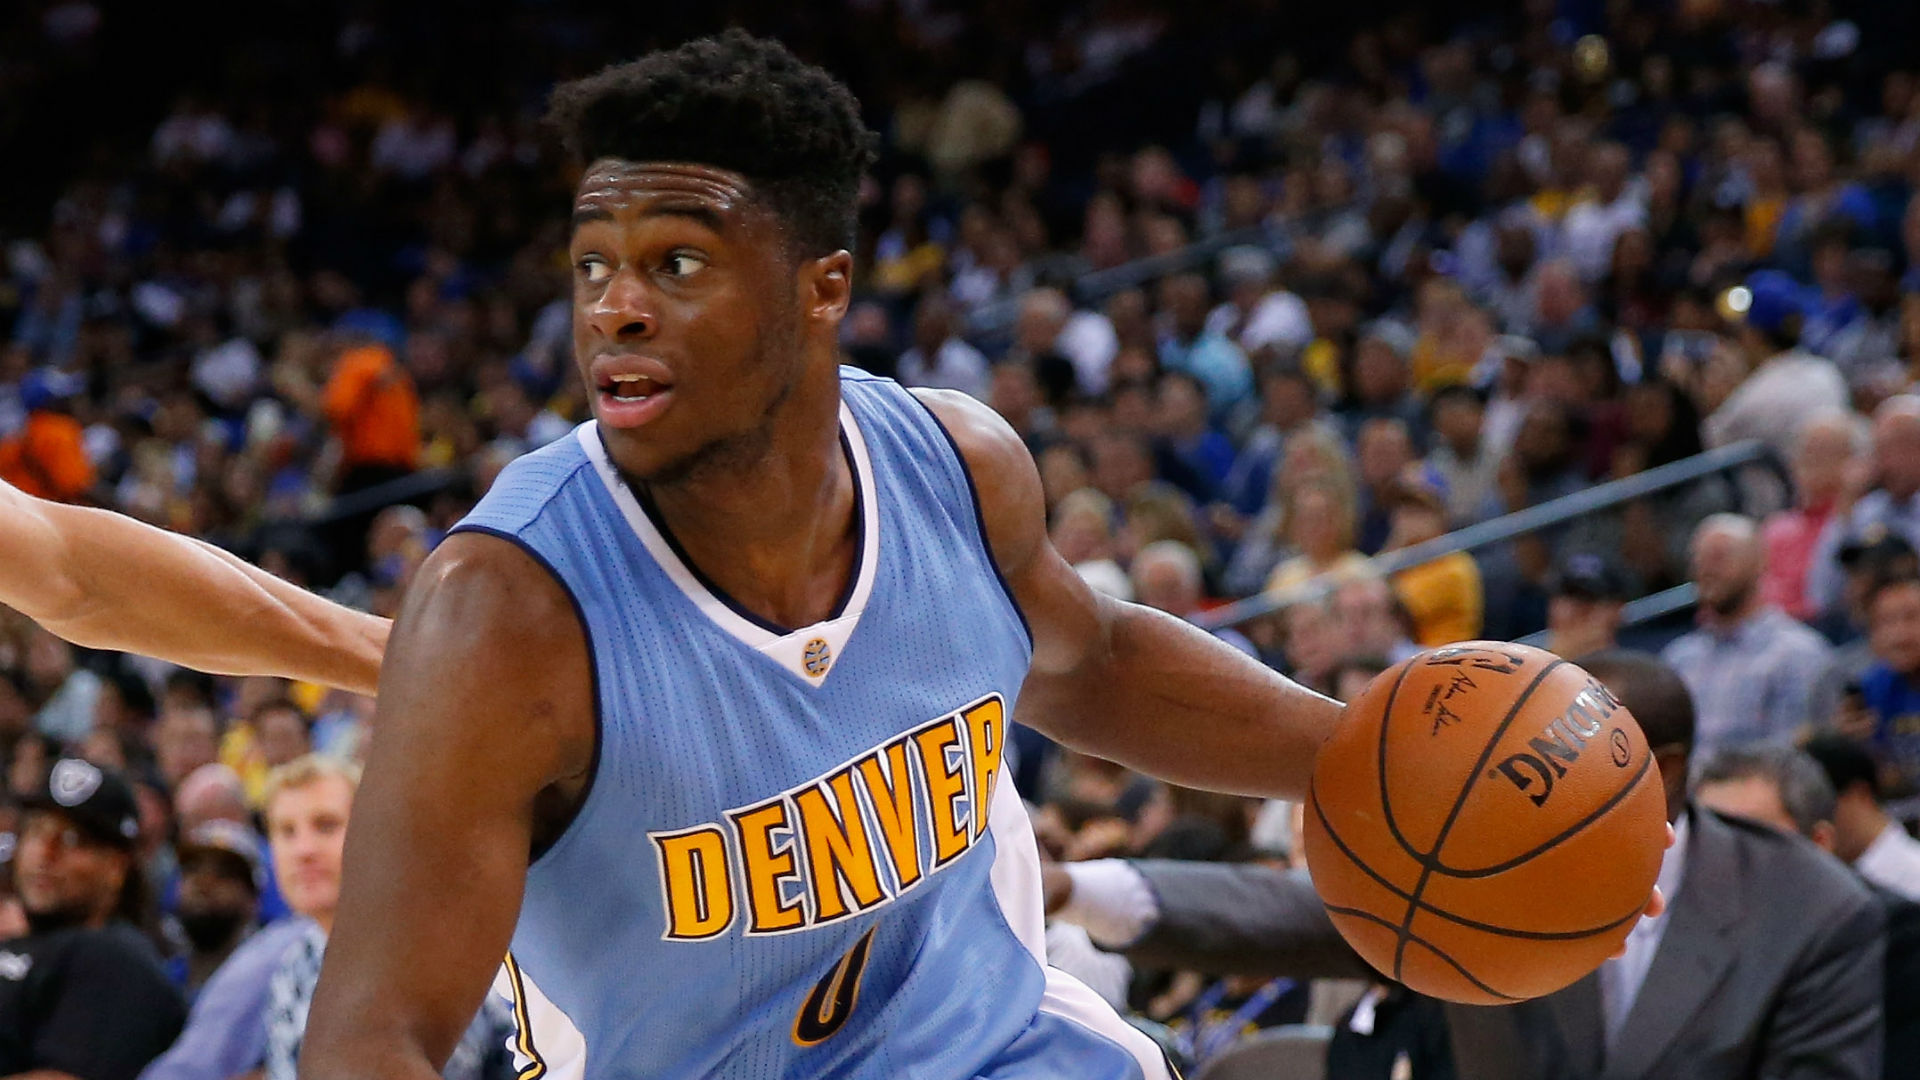 Emmanuel Mudiay Traded to Knicks in 3-Team Deal Involving Doug McDermott